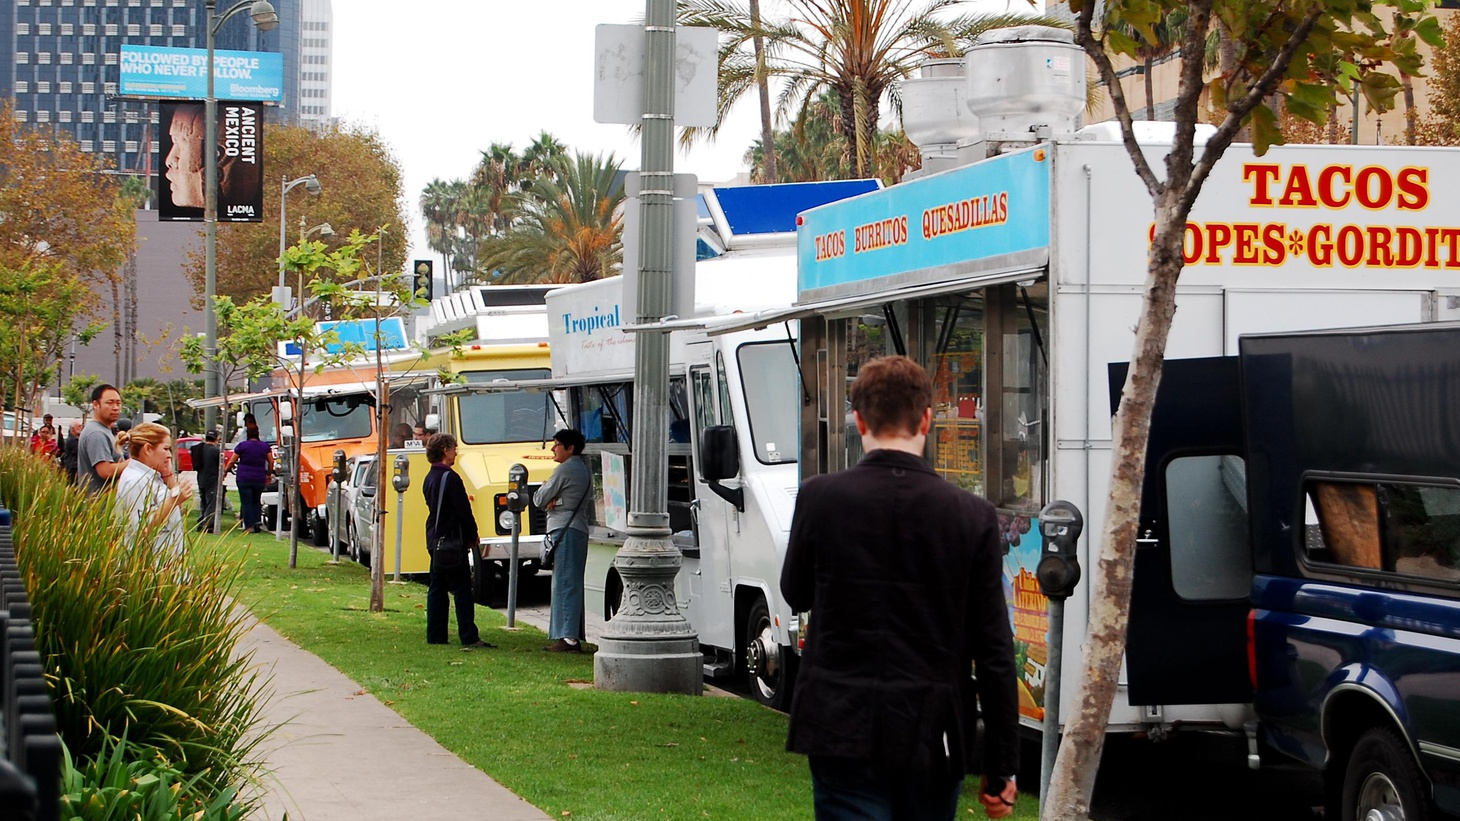 LA County officials concede they have never inspected some 40% of the 3200 vehicles that are part of the food-truck frenzy. Is that anything to worry about?